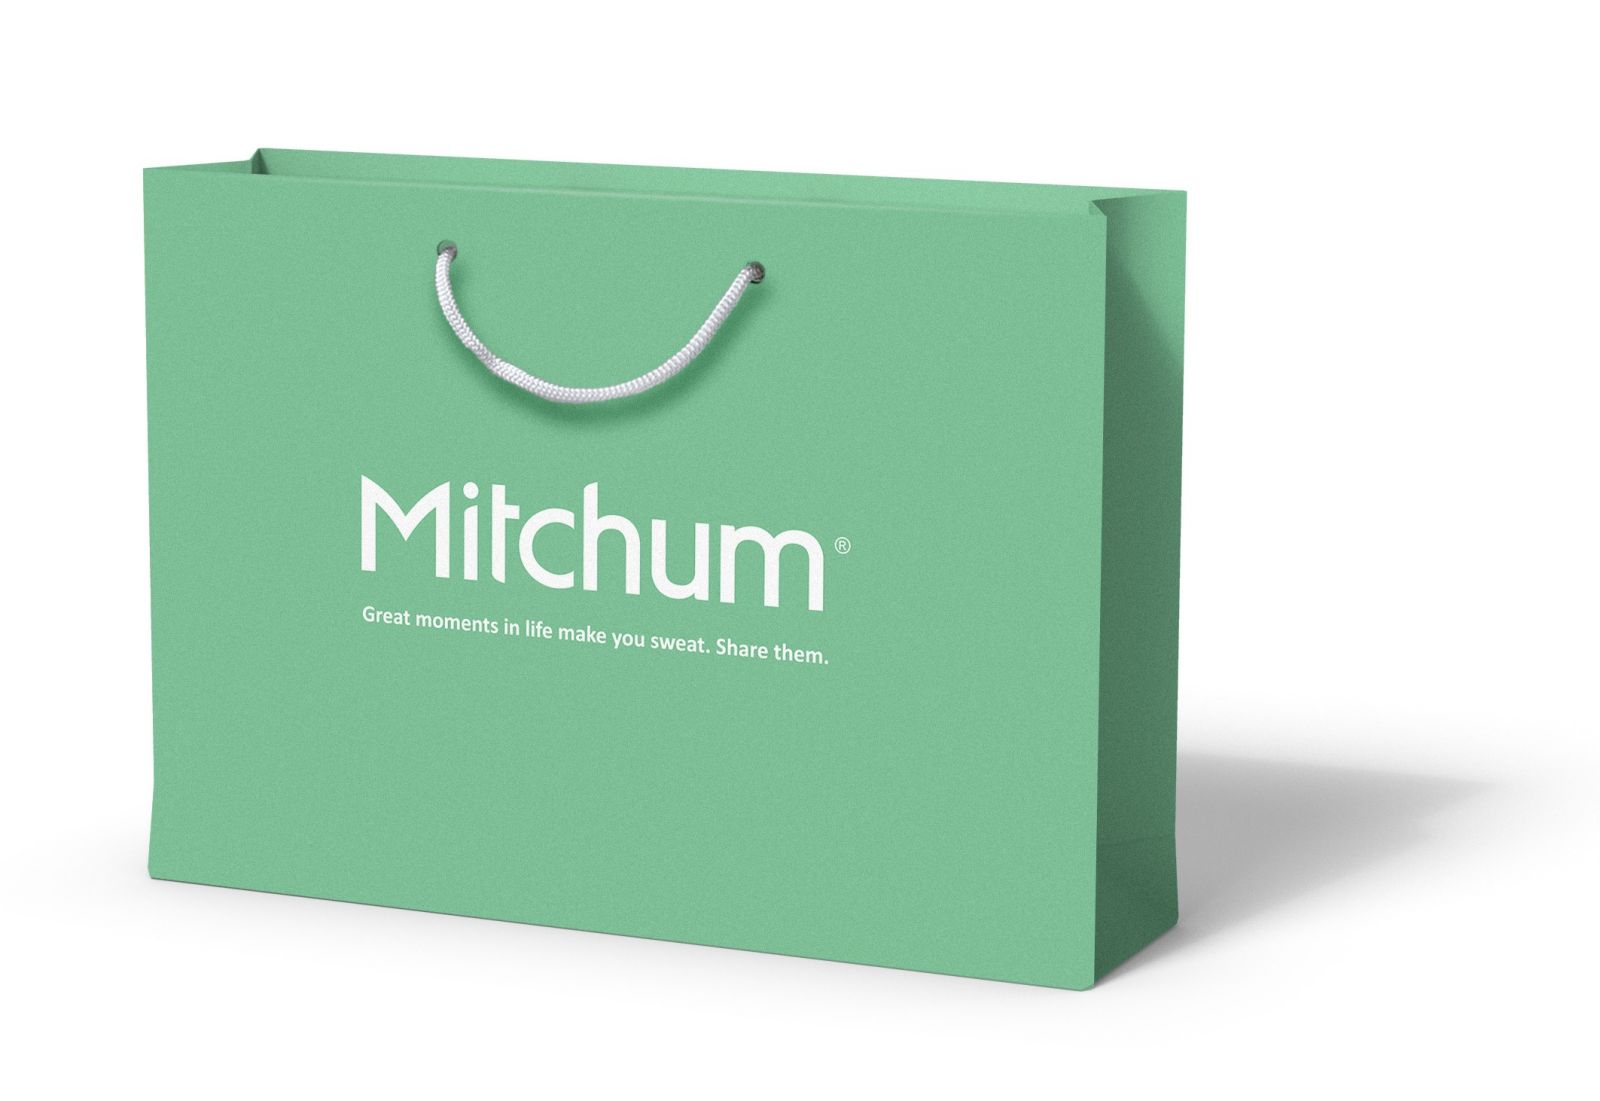 Mitchum Printed Exhibition Bag